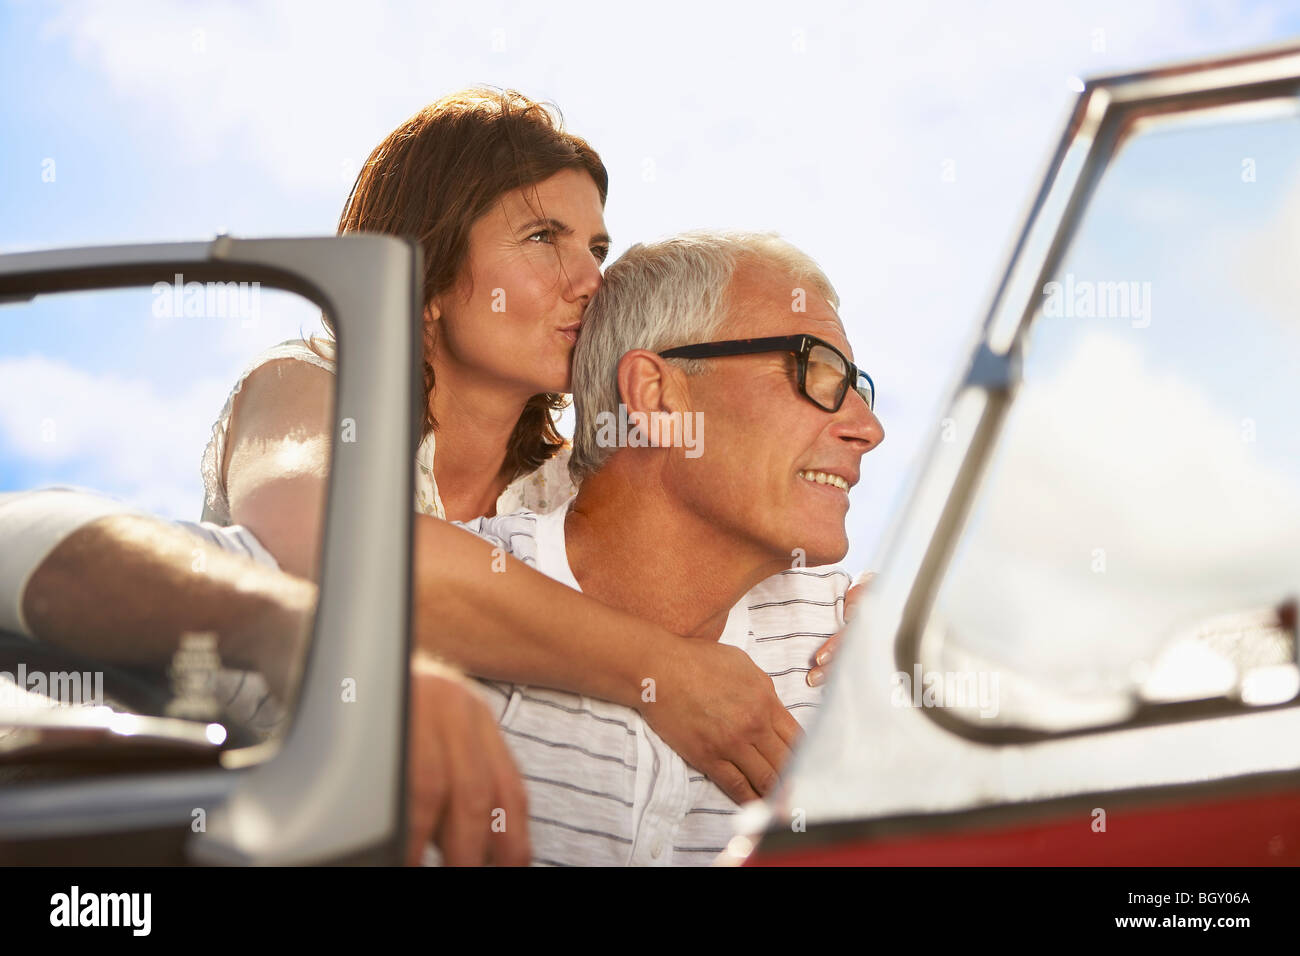 Senior couple embracing in sports car - Stock Image